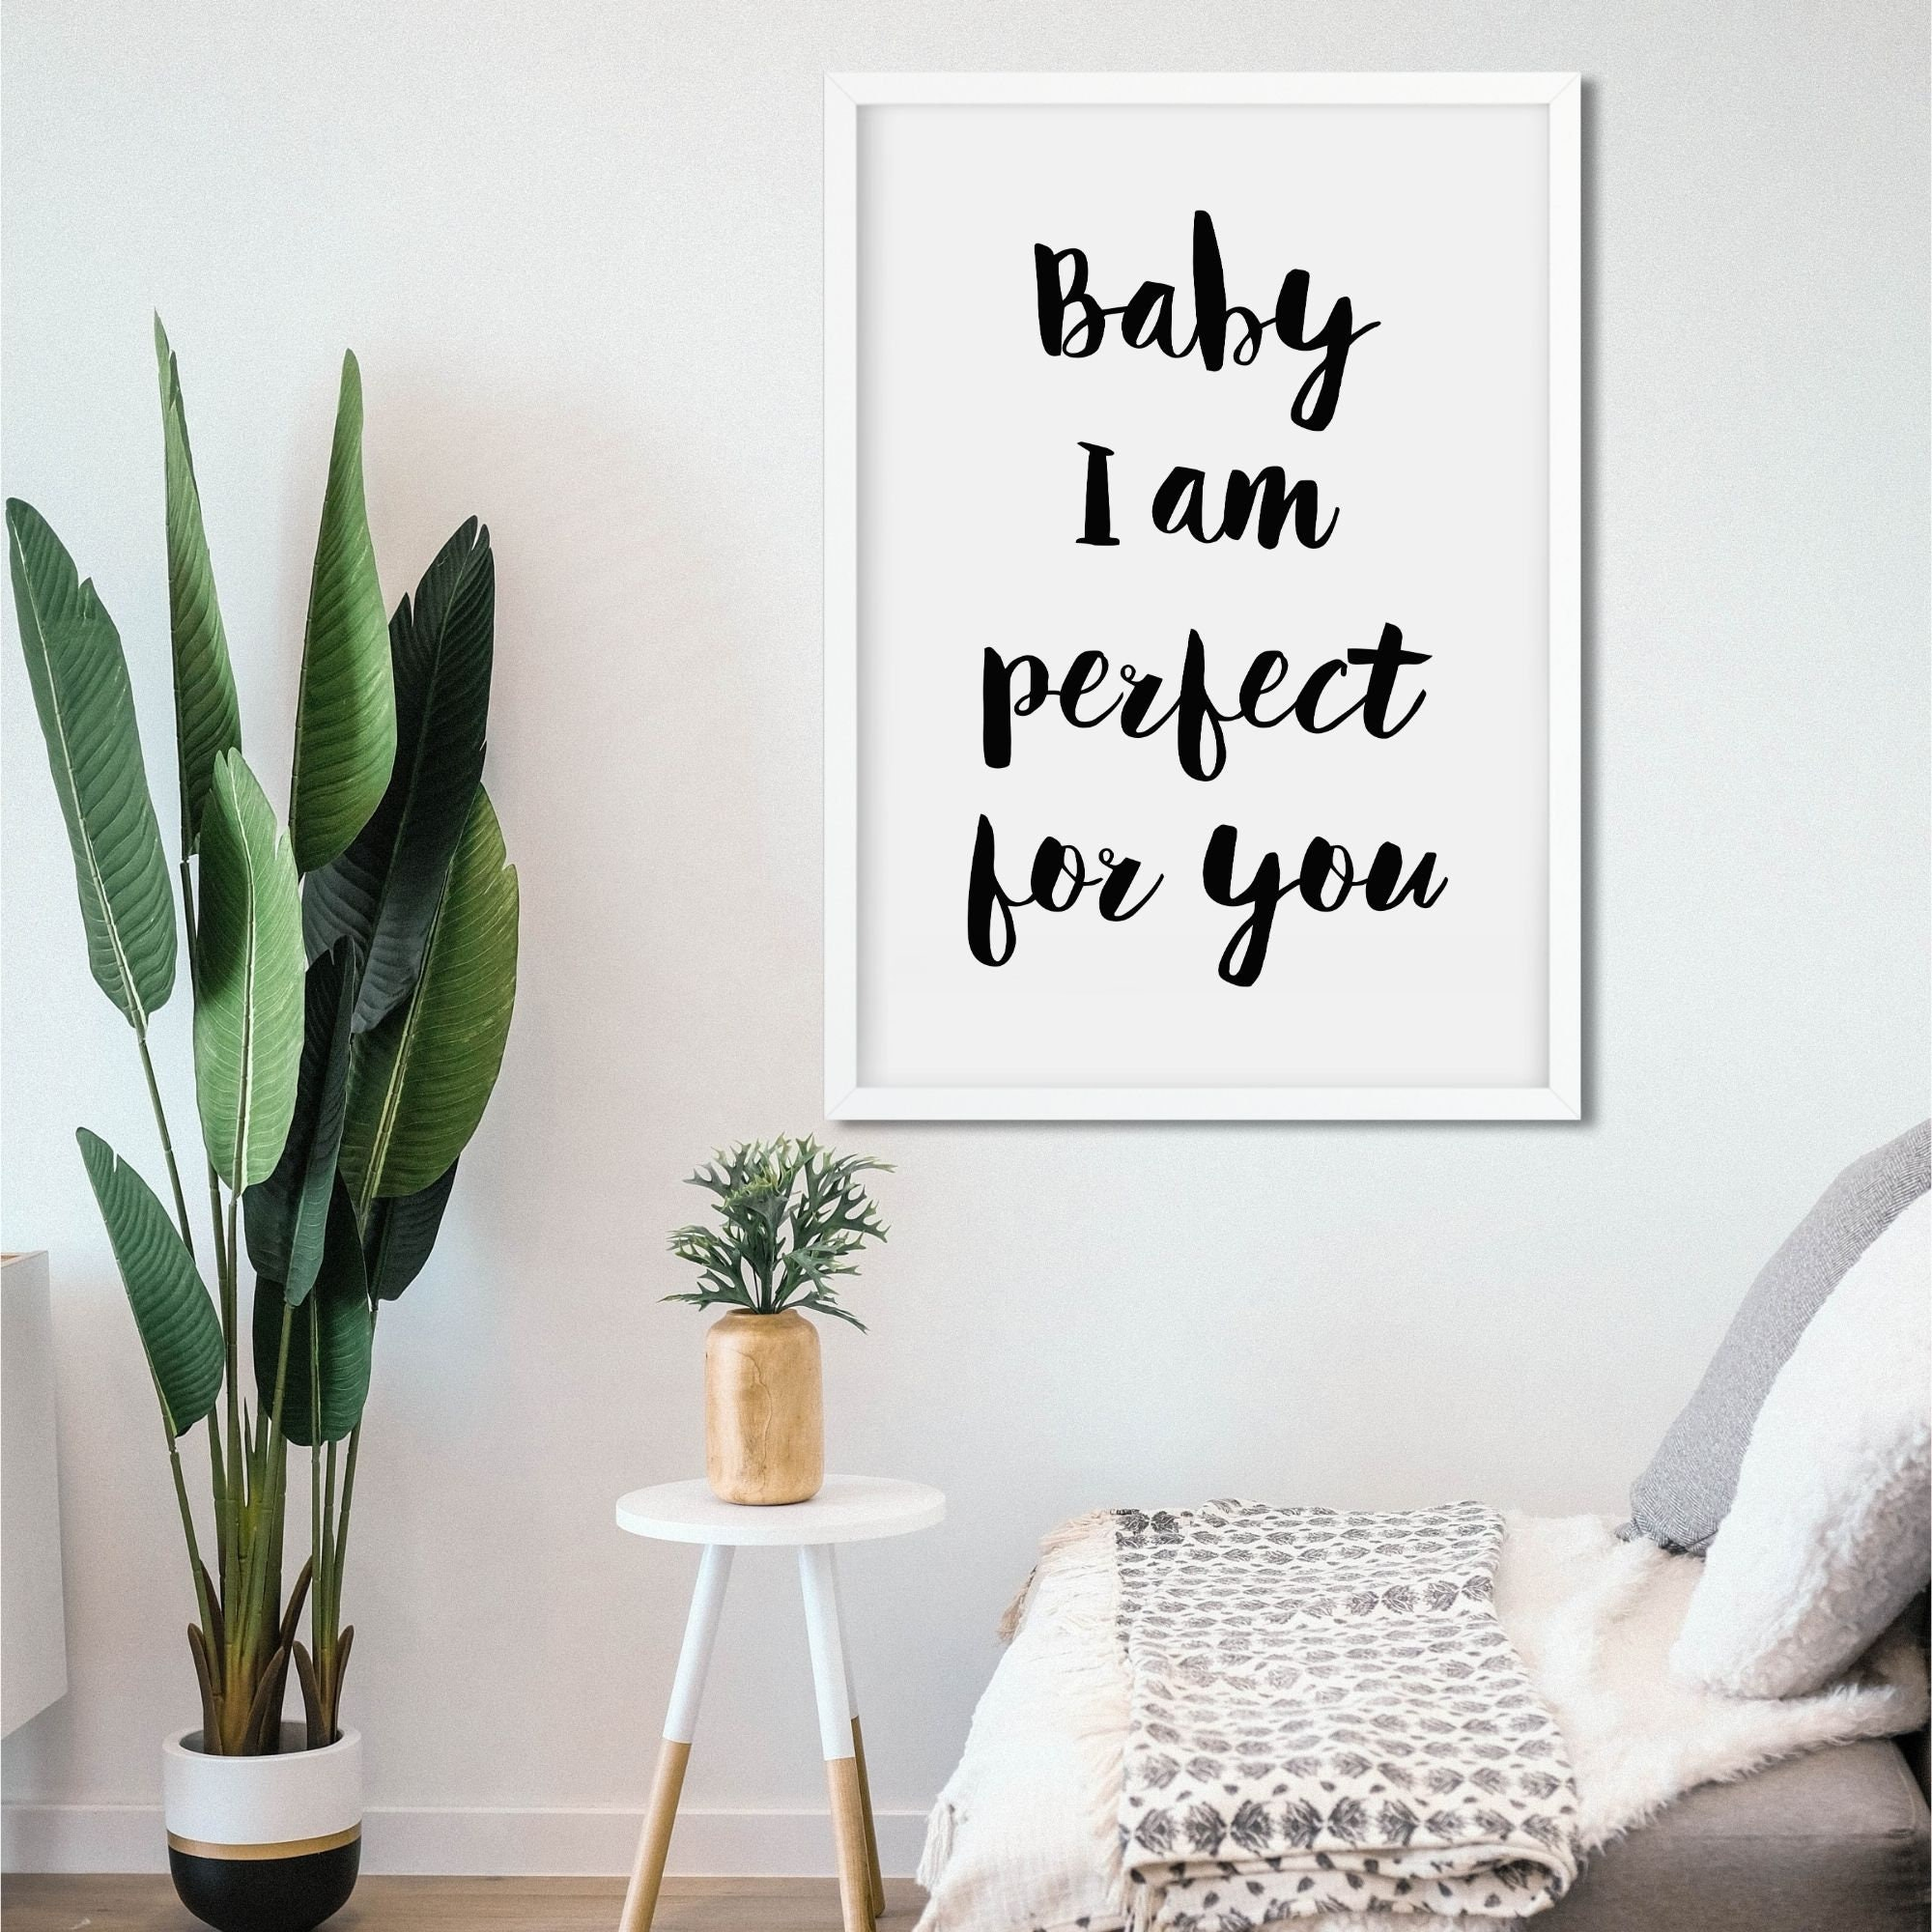 Baby I am perfect for you   One Direction Lyric Print   Instant Download